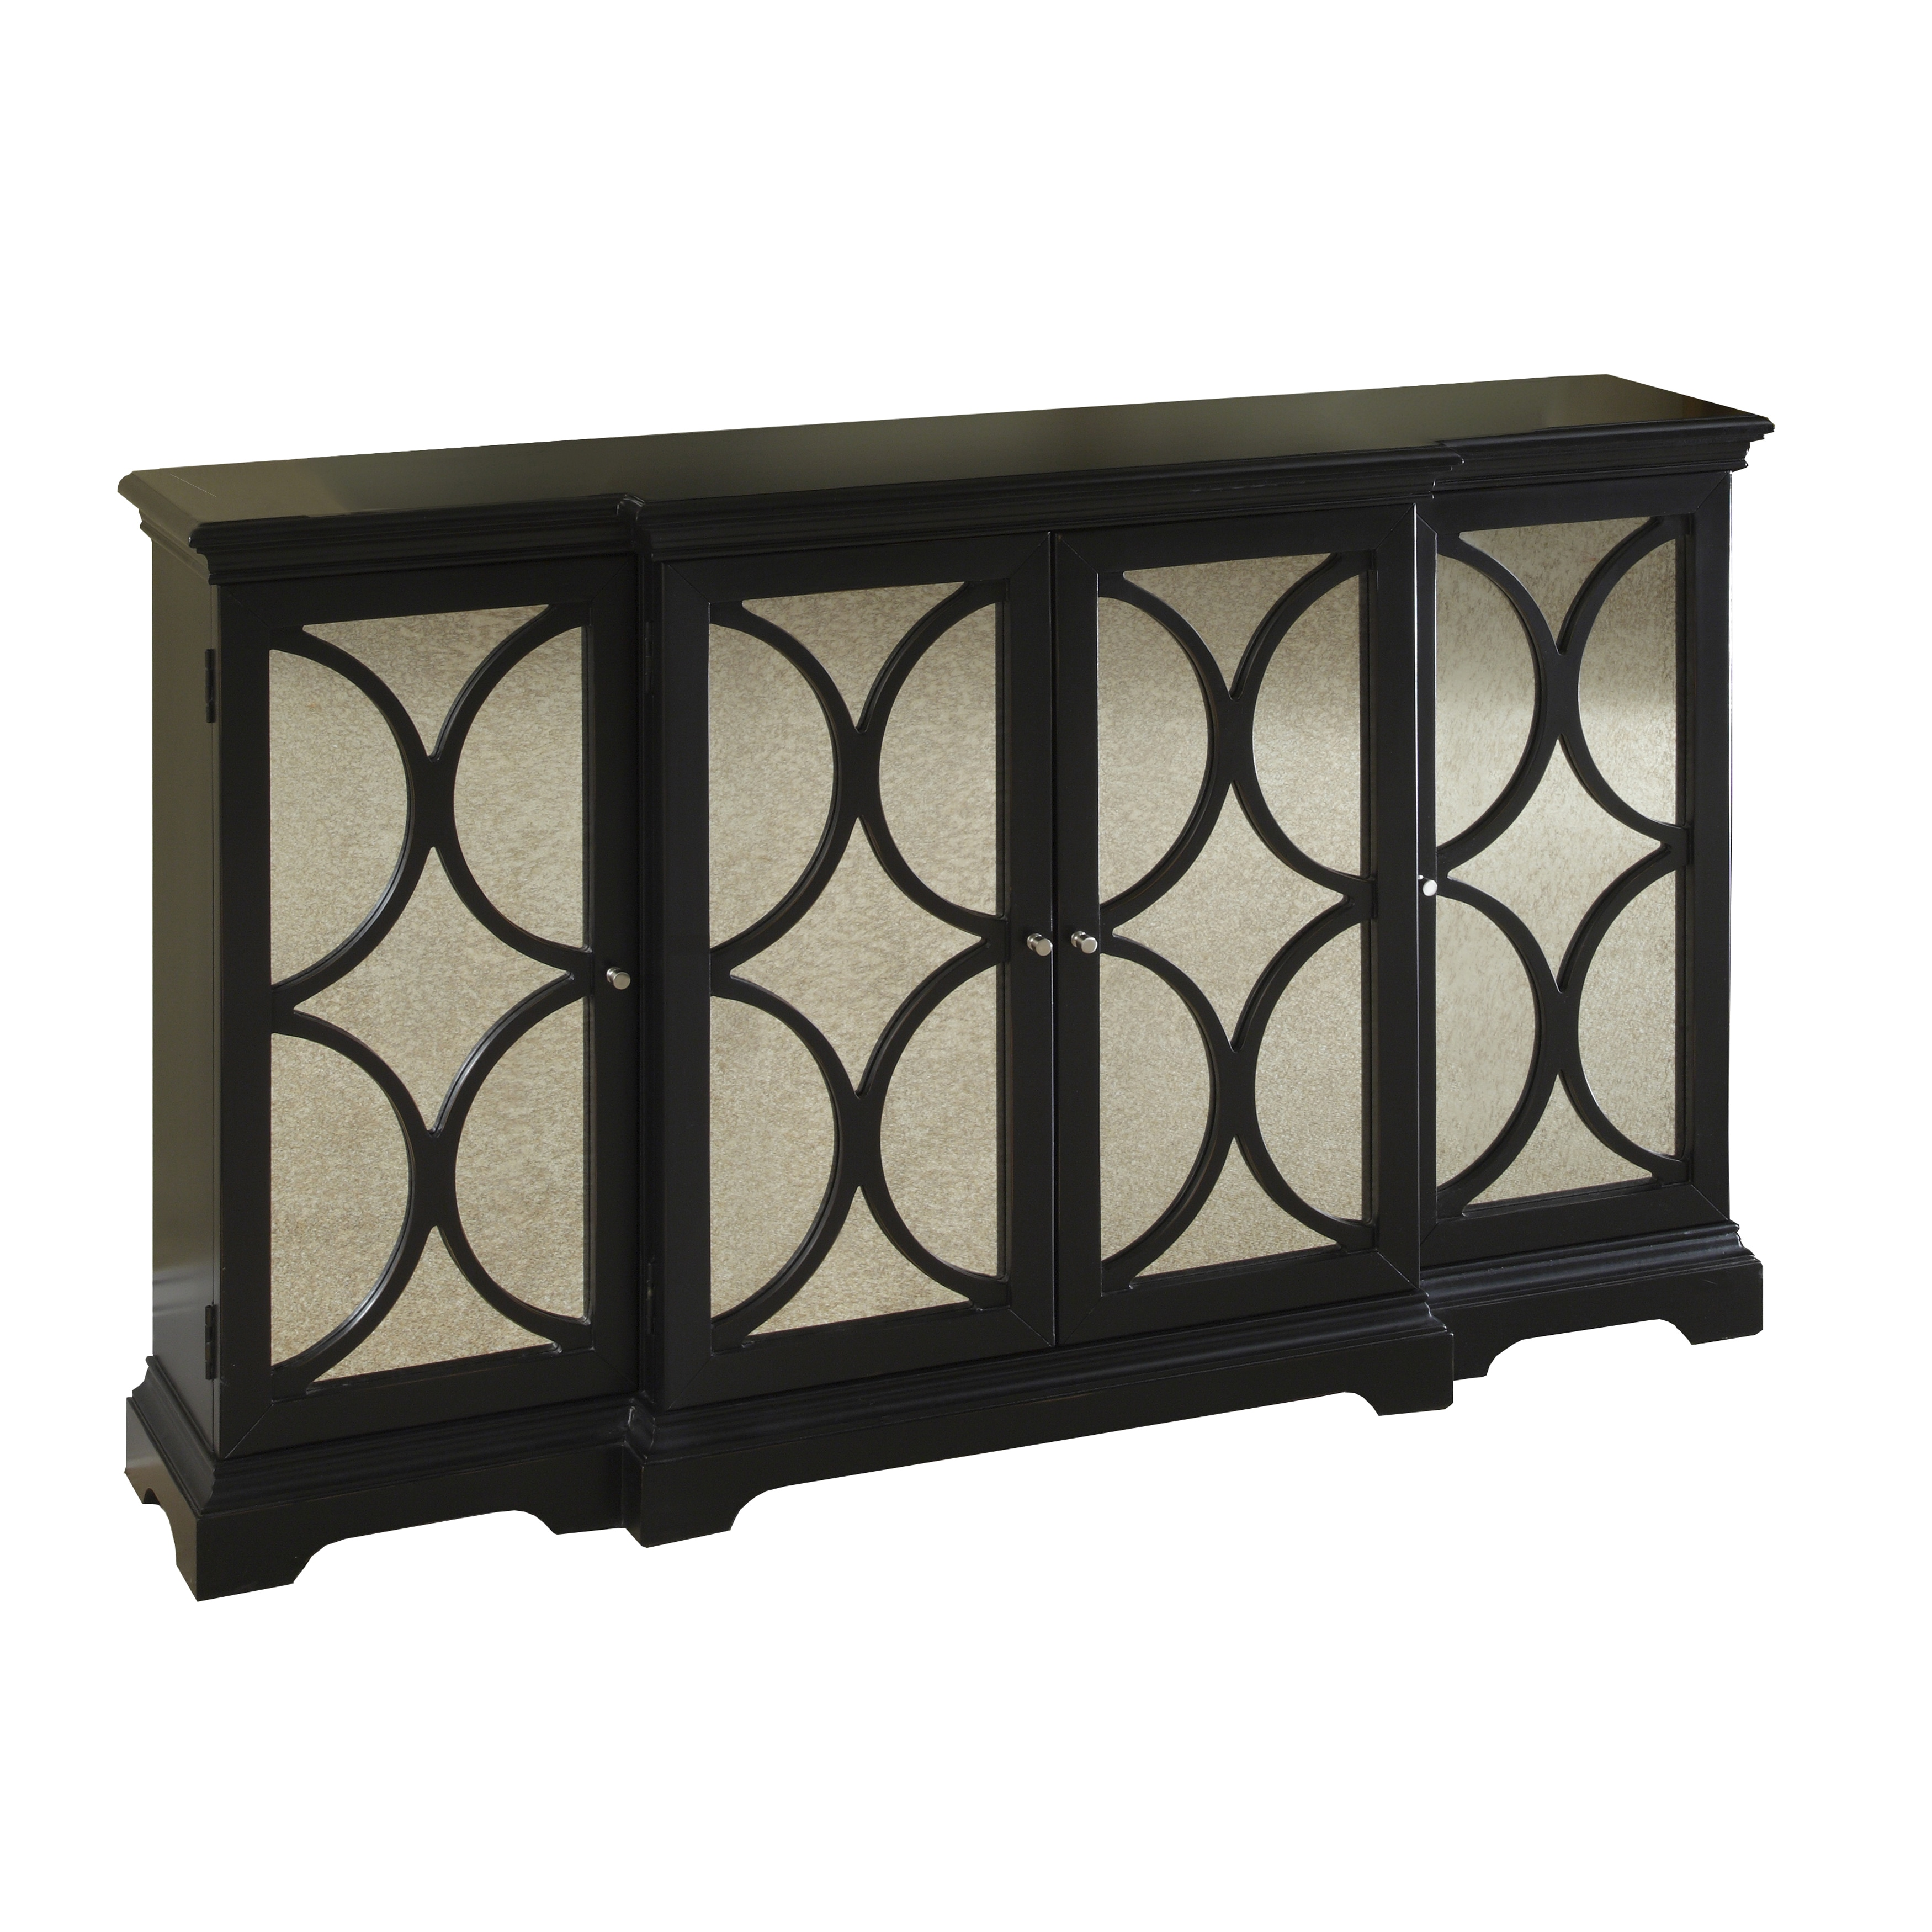 Painted Black Finish Credenza Chest with Mirrored Doors (...